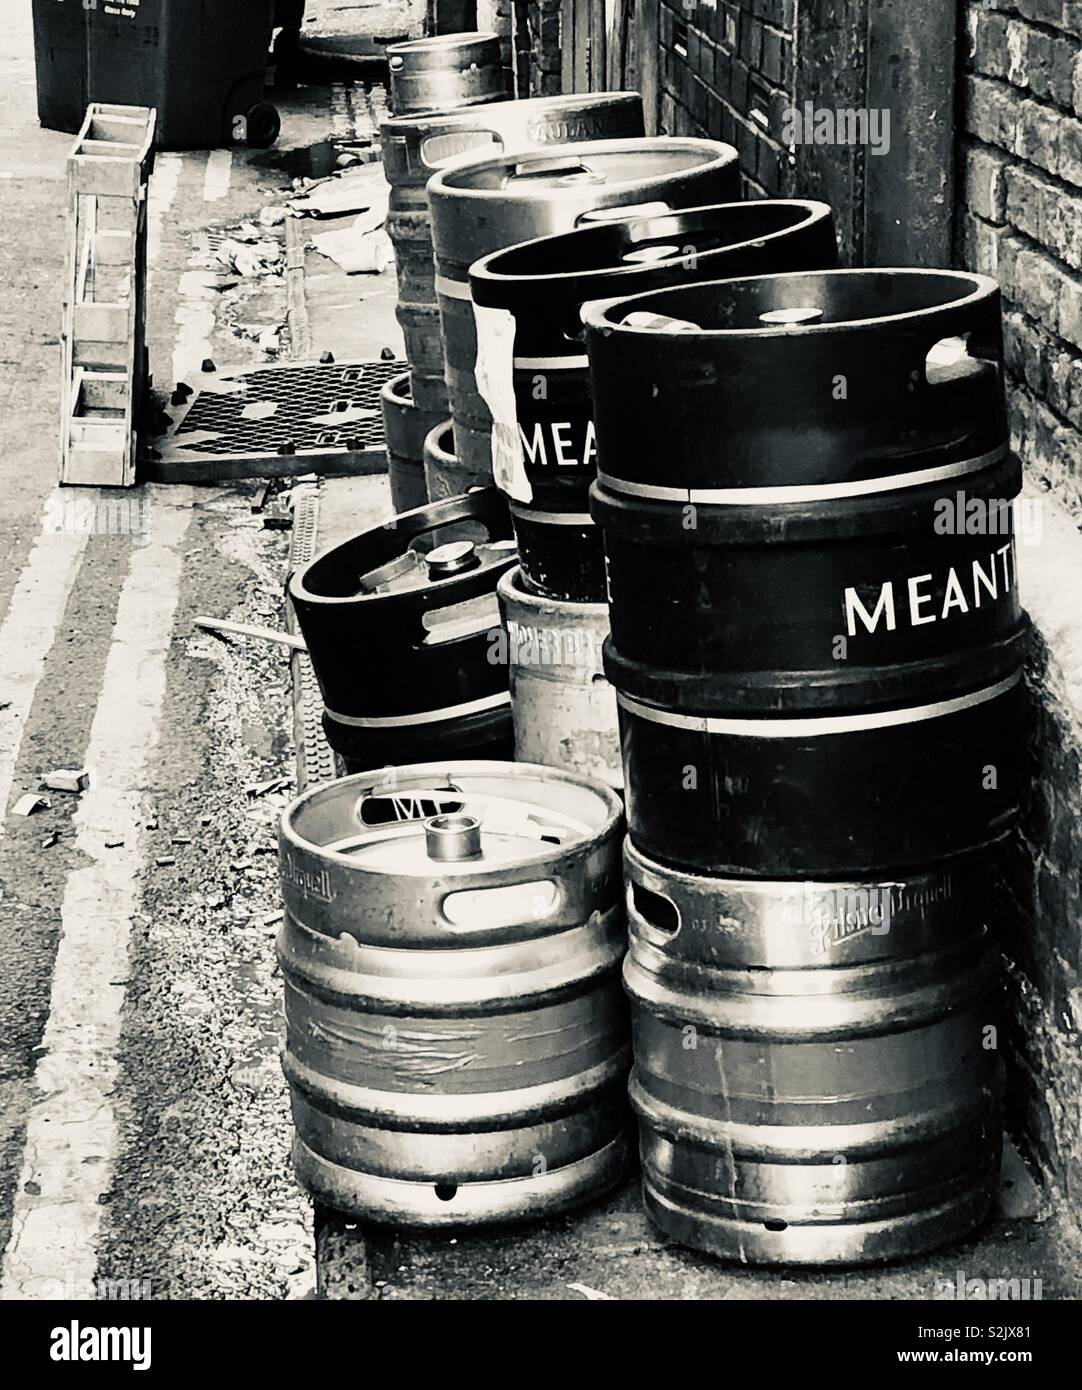 Empty beer casks on the street after the weekend - Stock Image